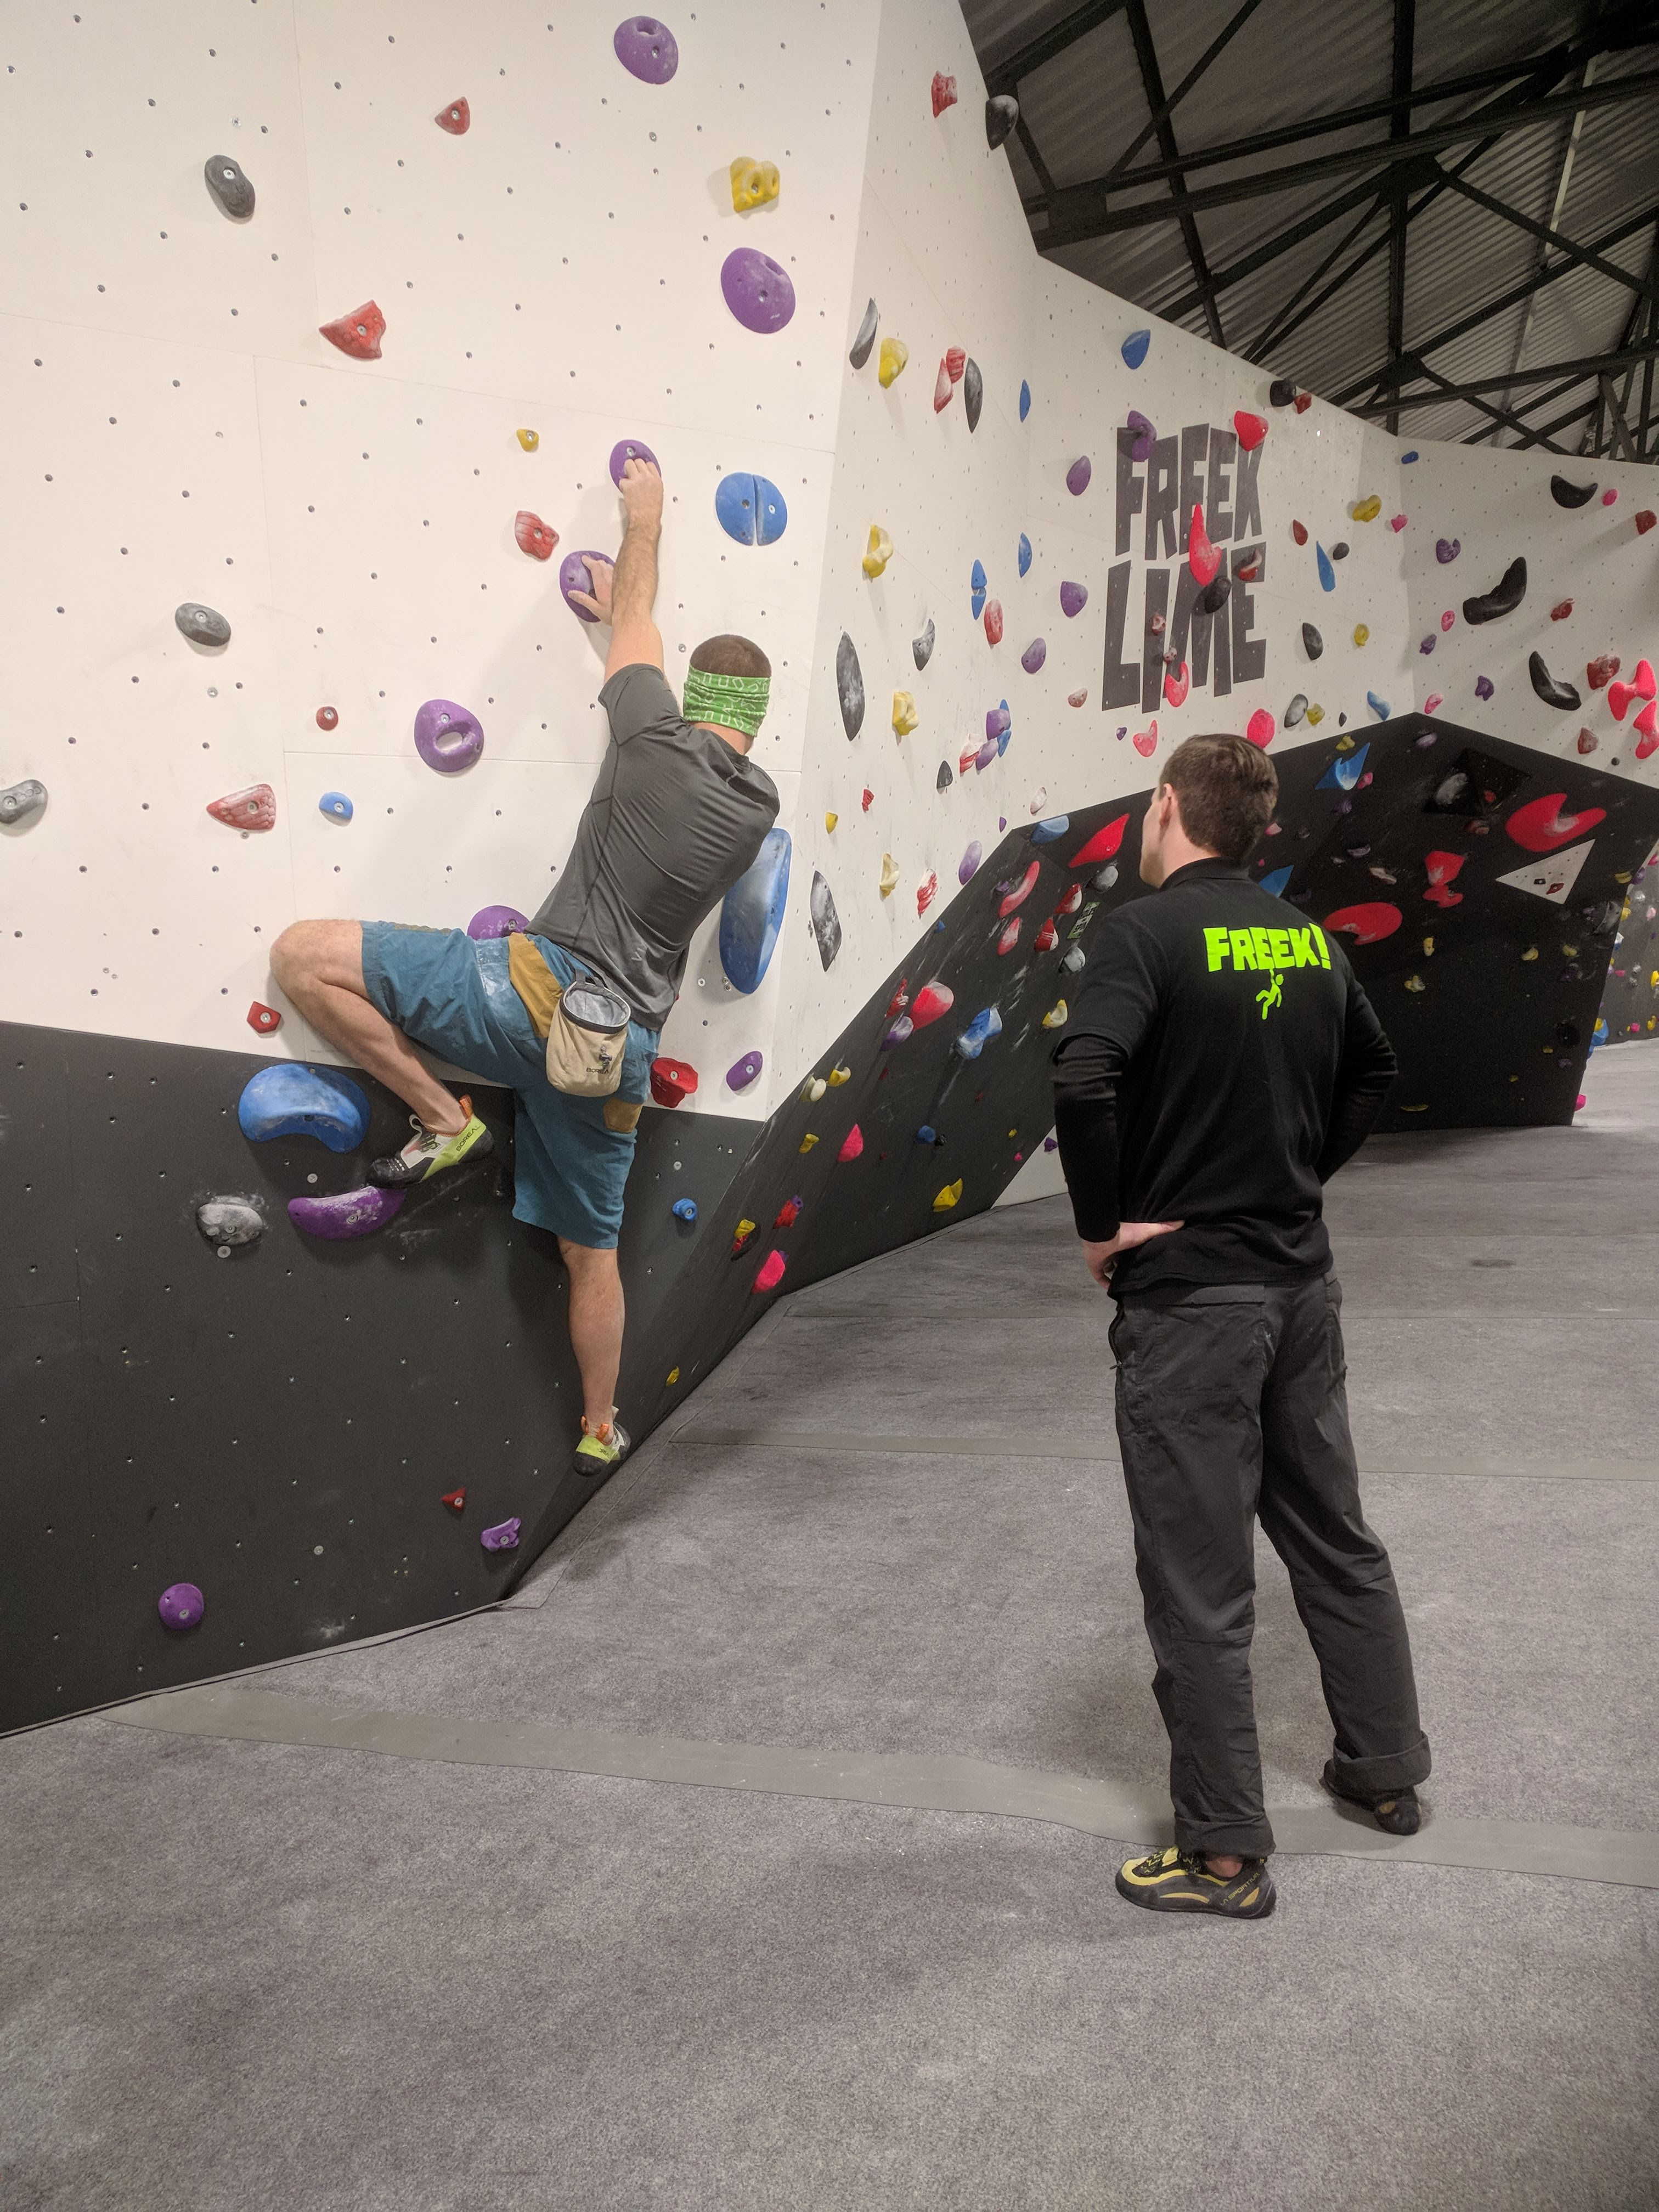 A picture of Jesse climbing a boulder problem with purple pockety holds. A member of staff is stood on the mat behind Jesse acting as his sight-guide.